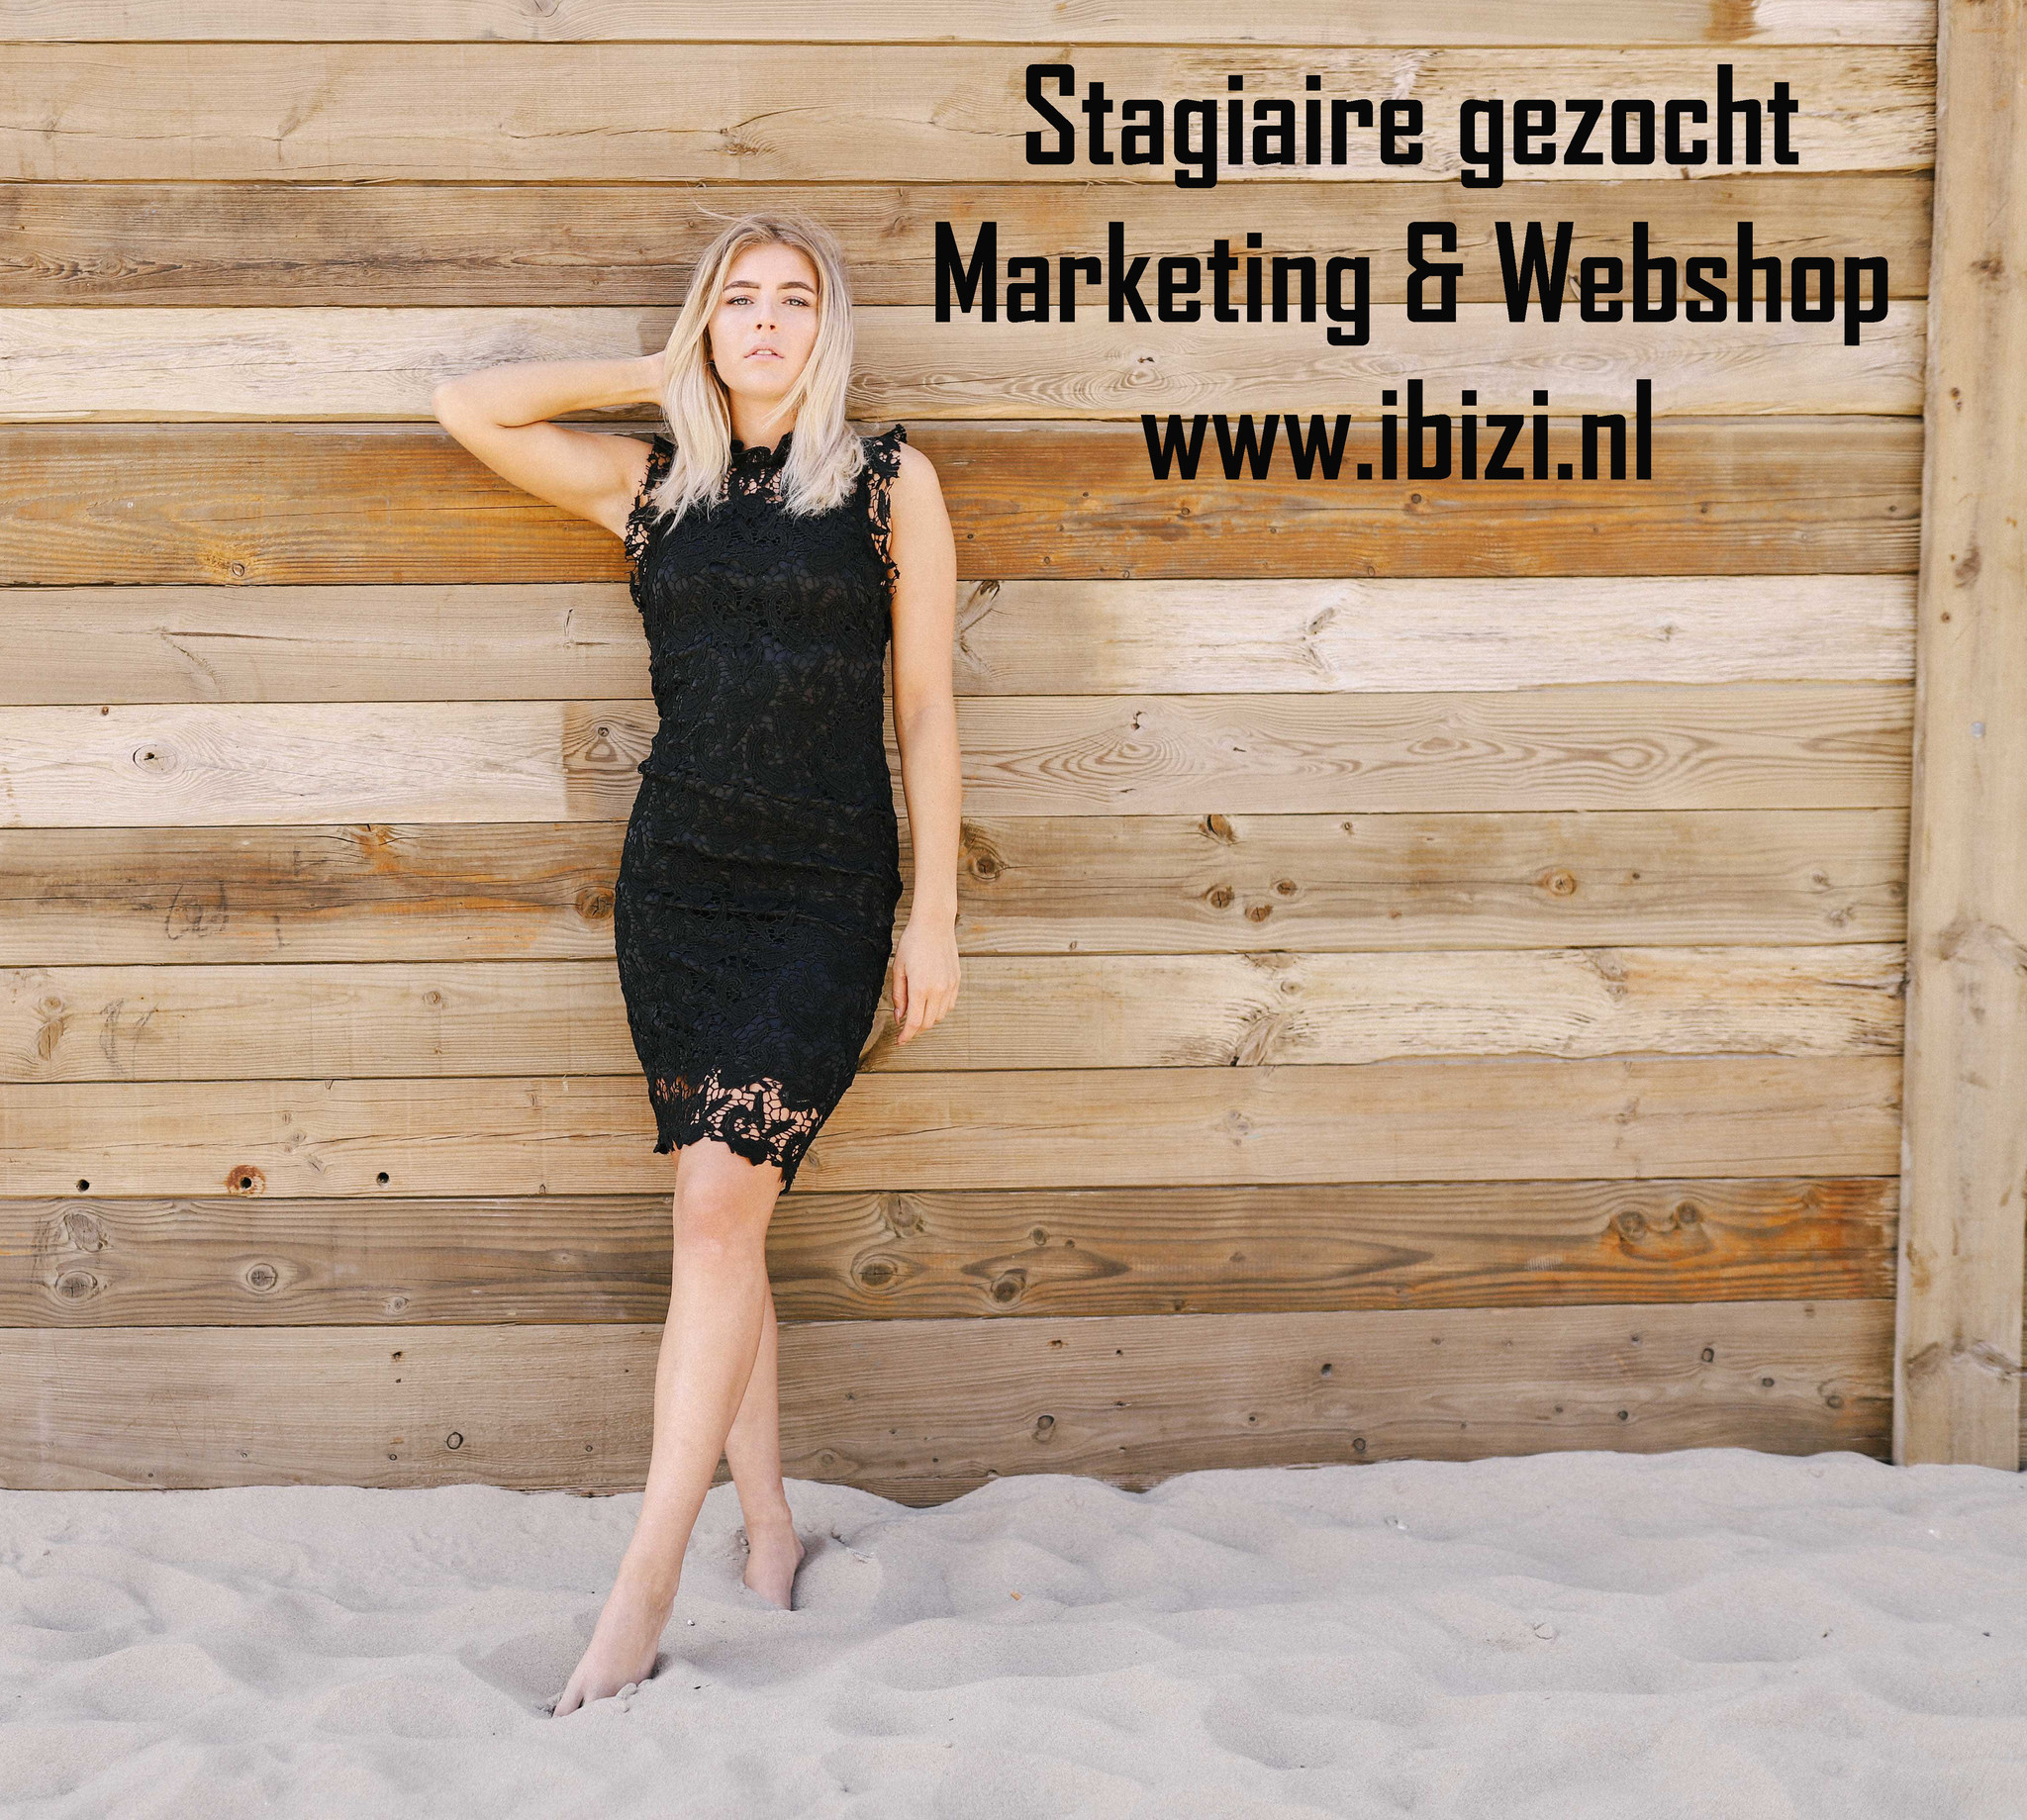 Stage - Webshop Marketing - Fashion Webshop!